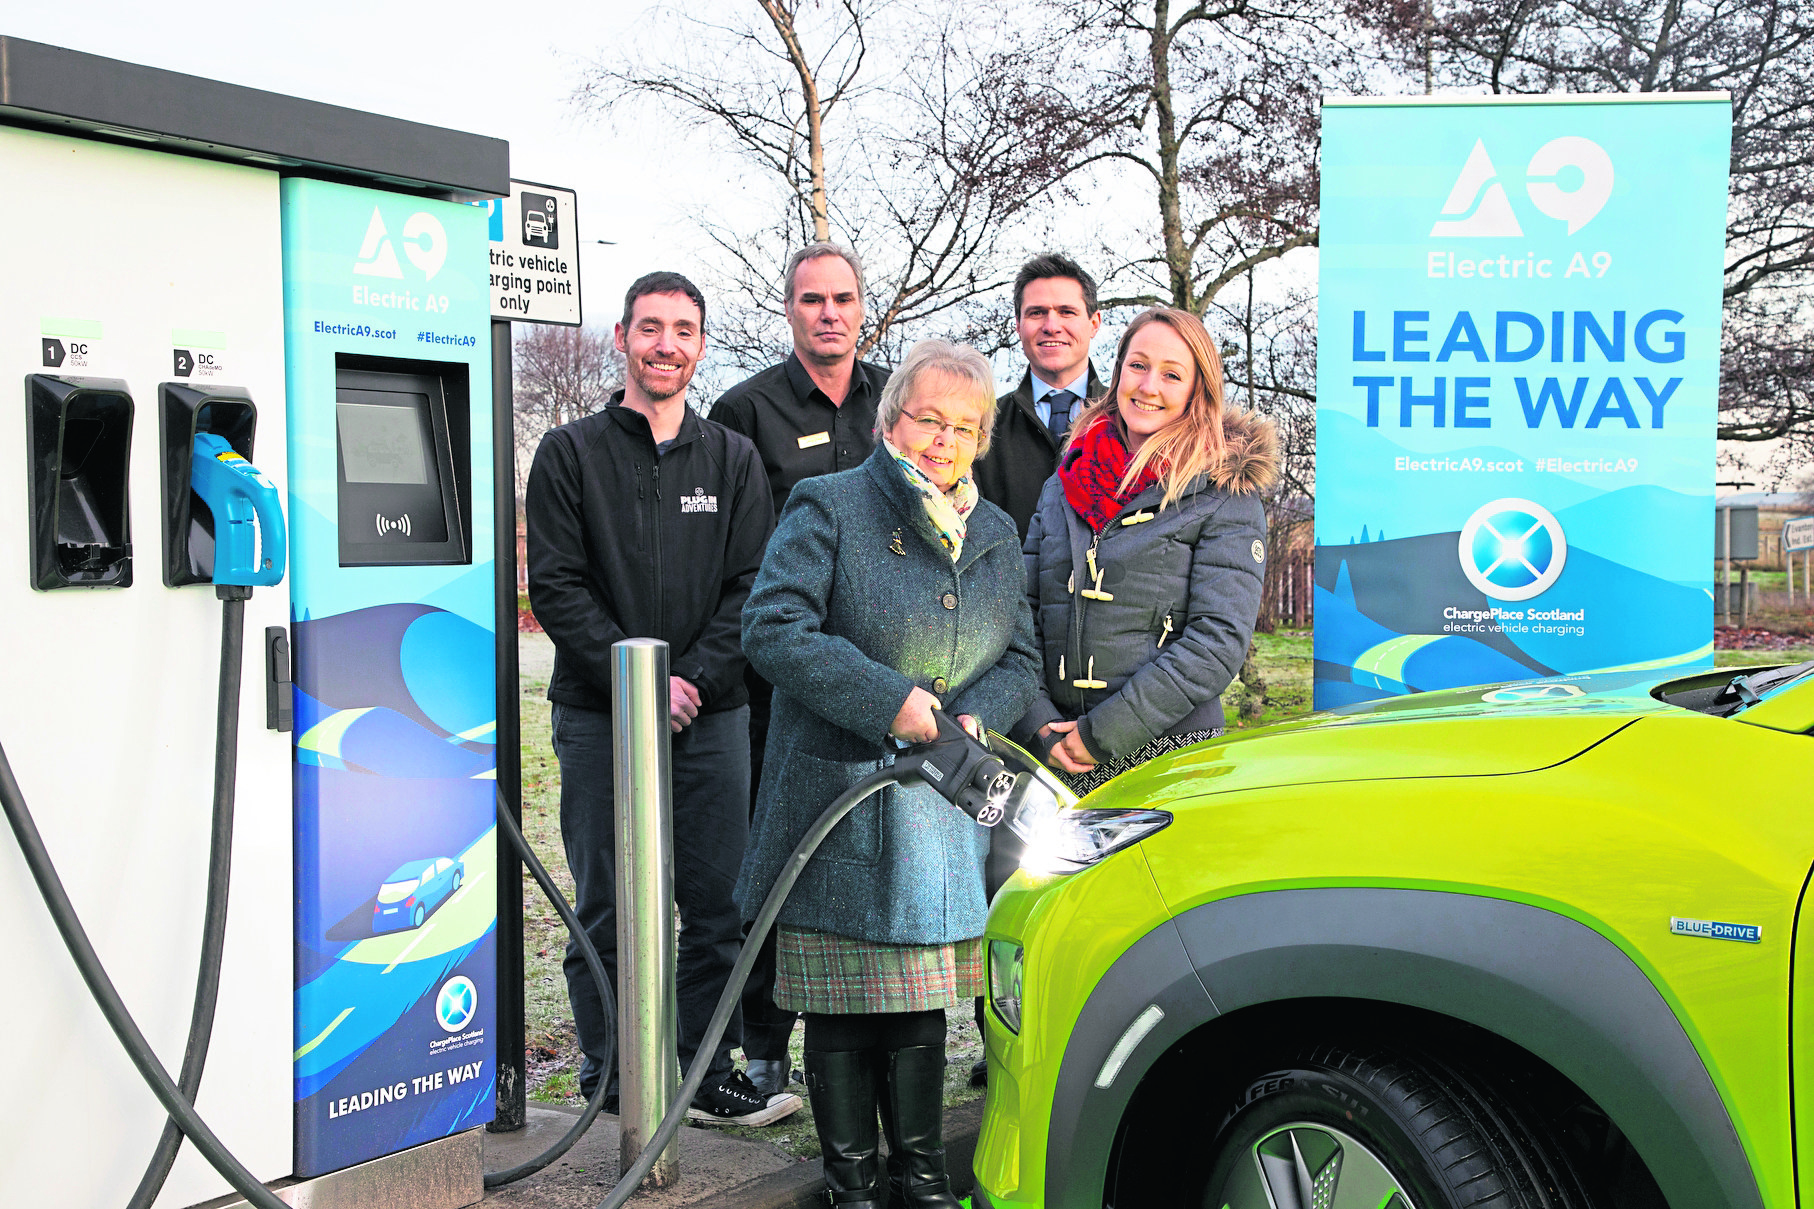 L-R Chris Ramsey, Trevor Wilson, Councillor Trish Robertson, Stephen Rennie, Ellie Grebenick  A9 Electric vehicle charger